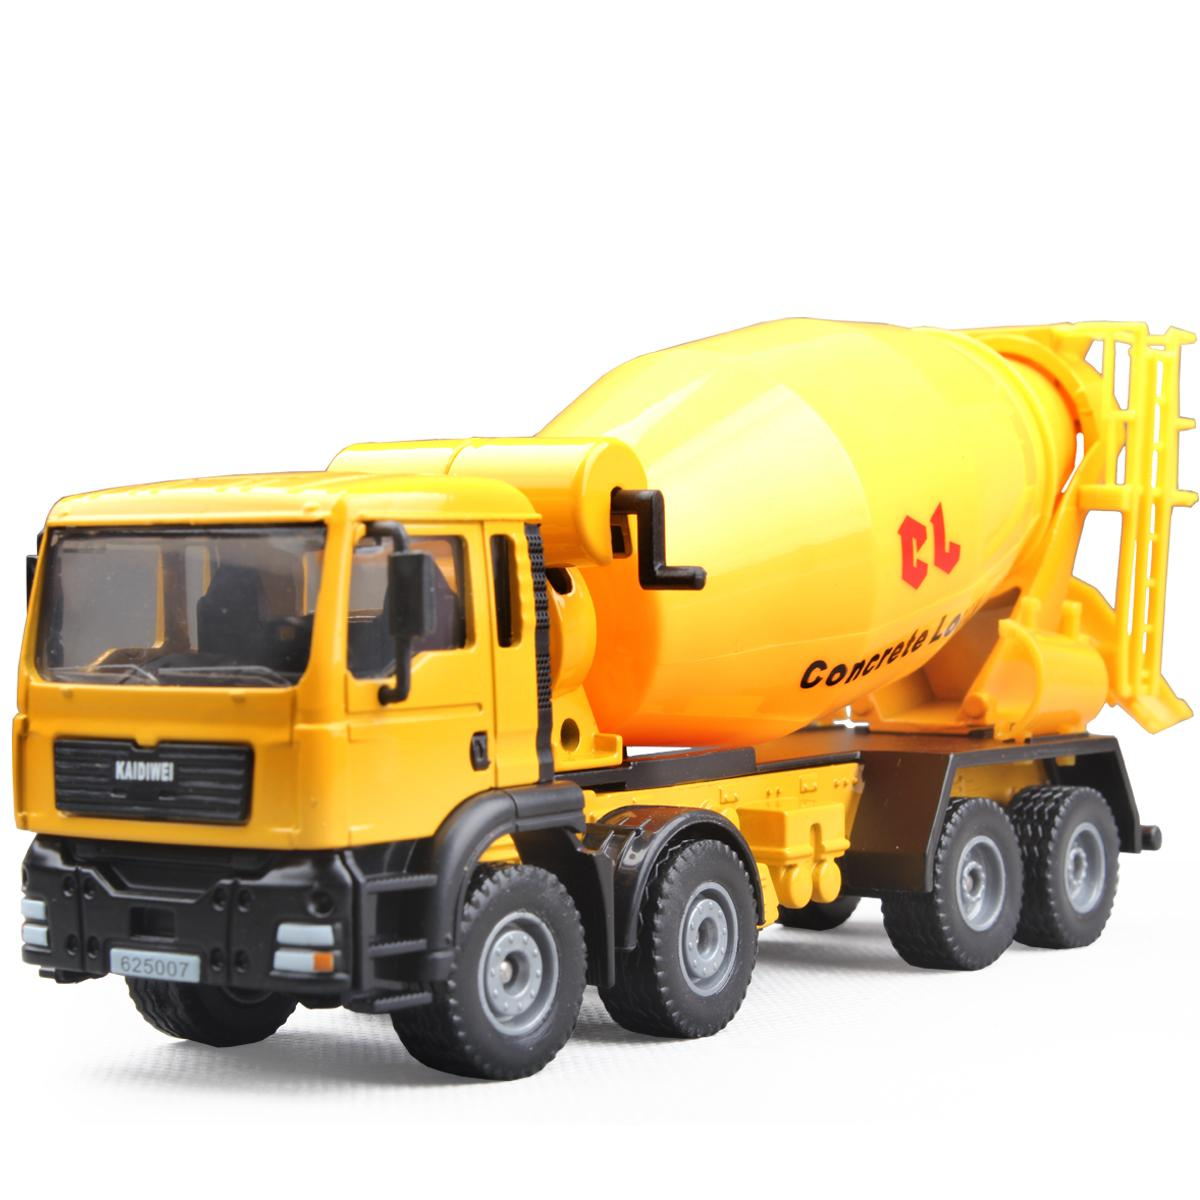 kids toys for children kaidiwei 1:50 scale model car diecast car model blaze car toy trailers Concrete mixing truck 625007(China (Mainland))